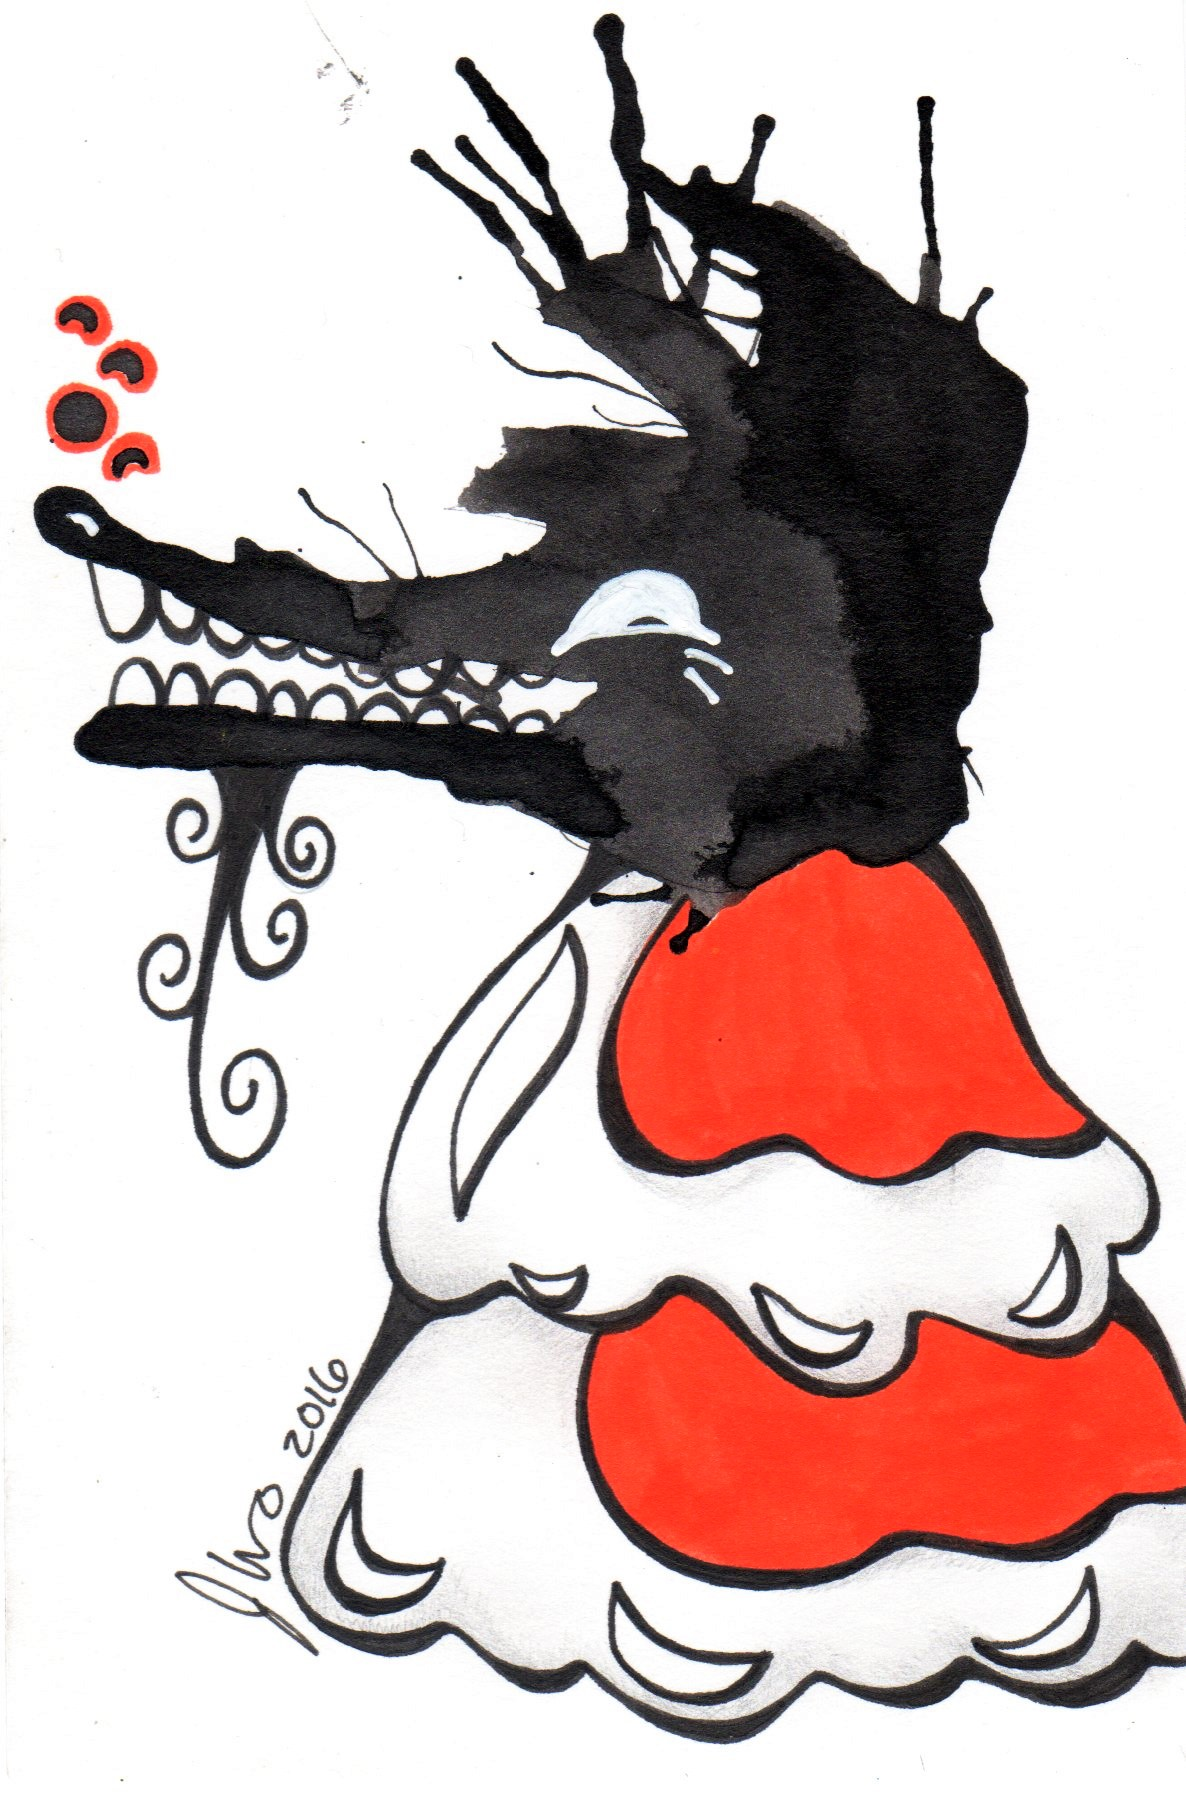 Ink Blot Monster #5